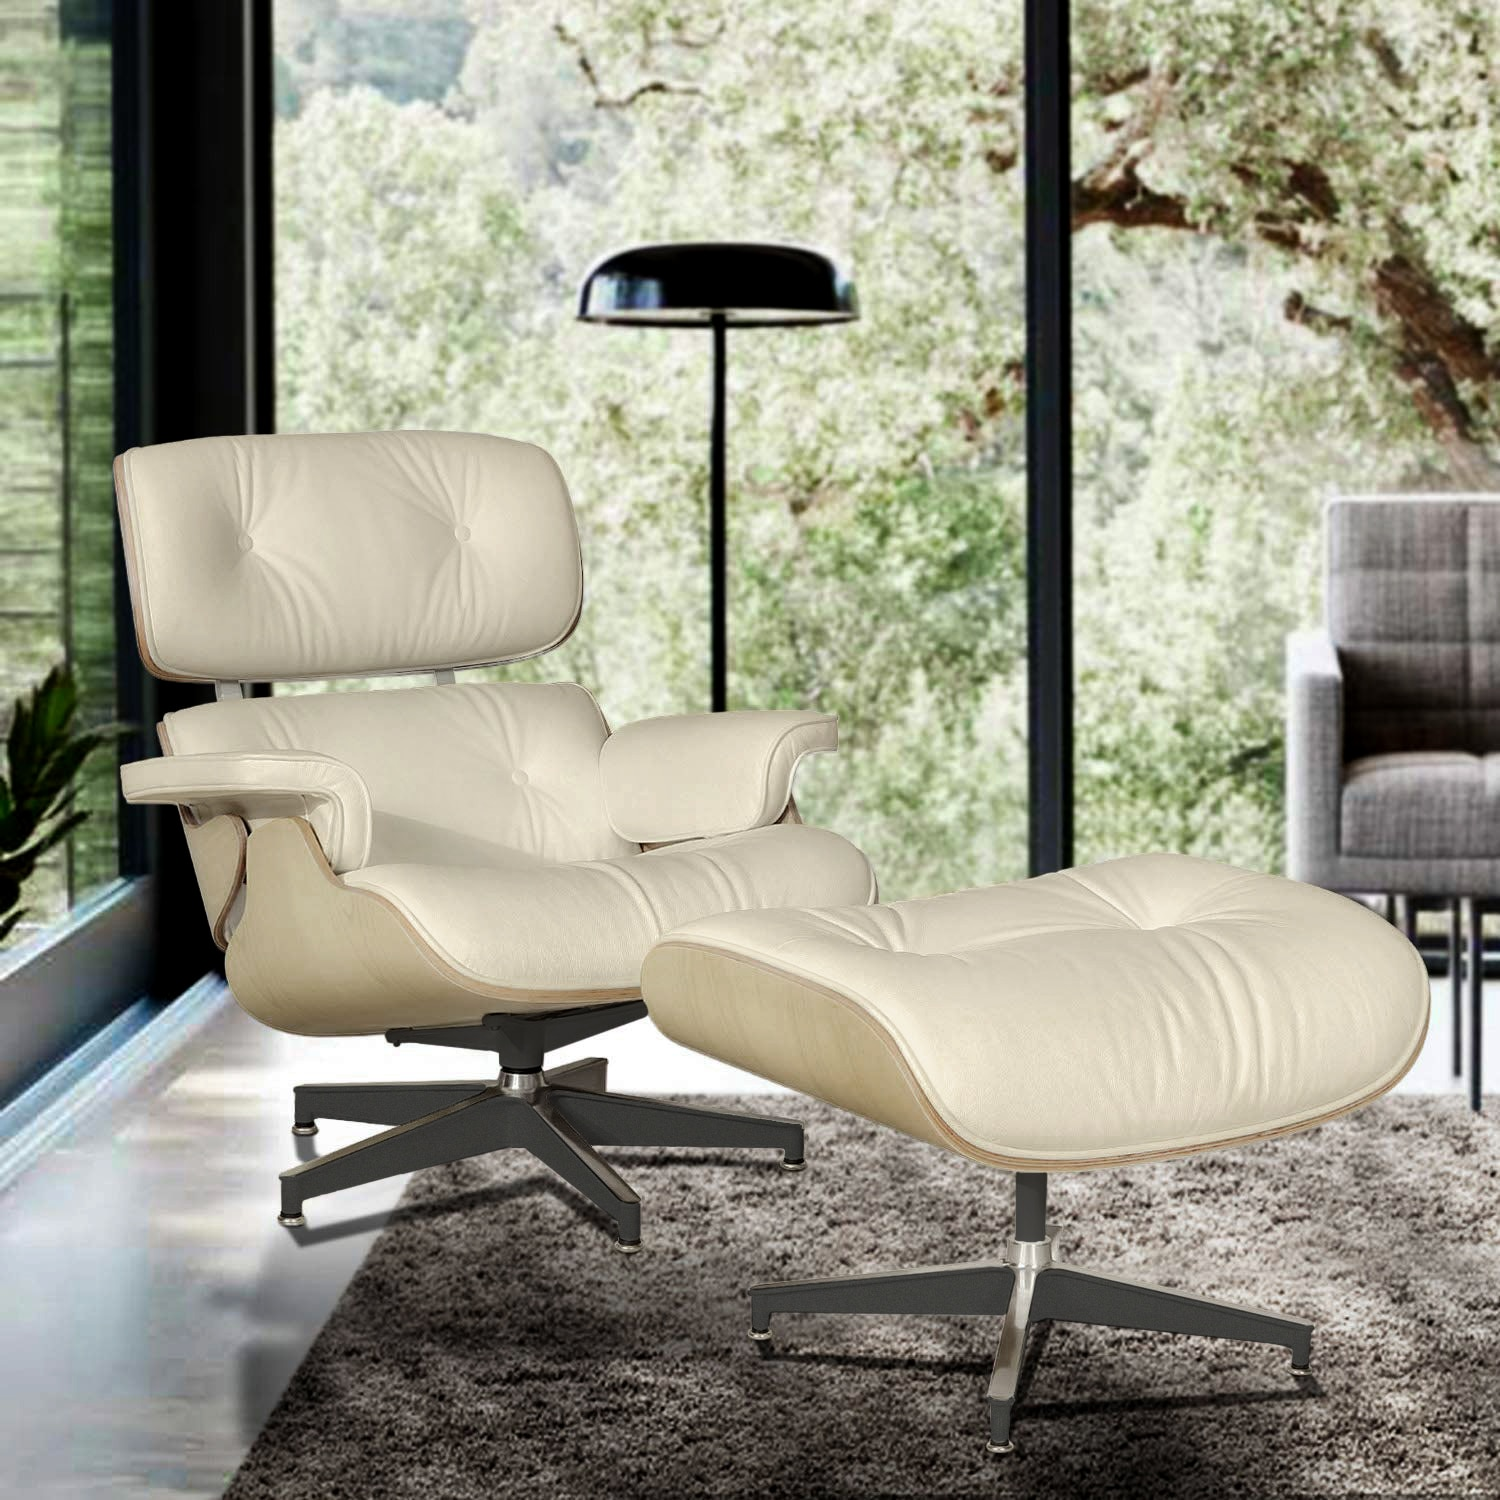 Hba85457855f8462fa74515613b98d1bcE - Classic Lounge Chair with Ottoman Leisure Sofa 8 Color Genuine Leather Lounge Chair Alluminum Leg for Living/Bedding/Office Room